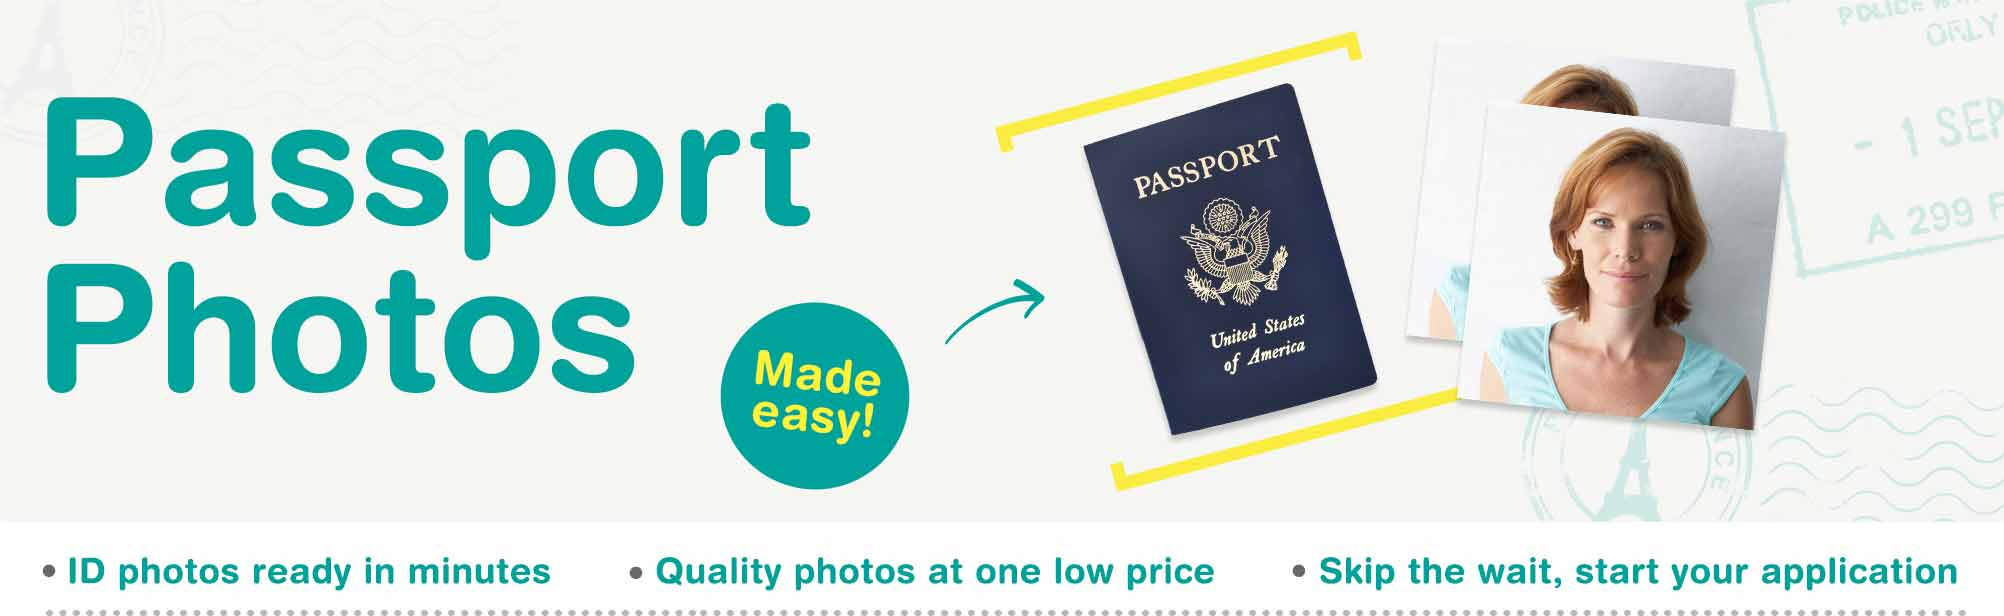 passport photos walgreens photo passport photos made easy id photos ready in minutes quality photos at one low